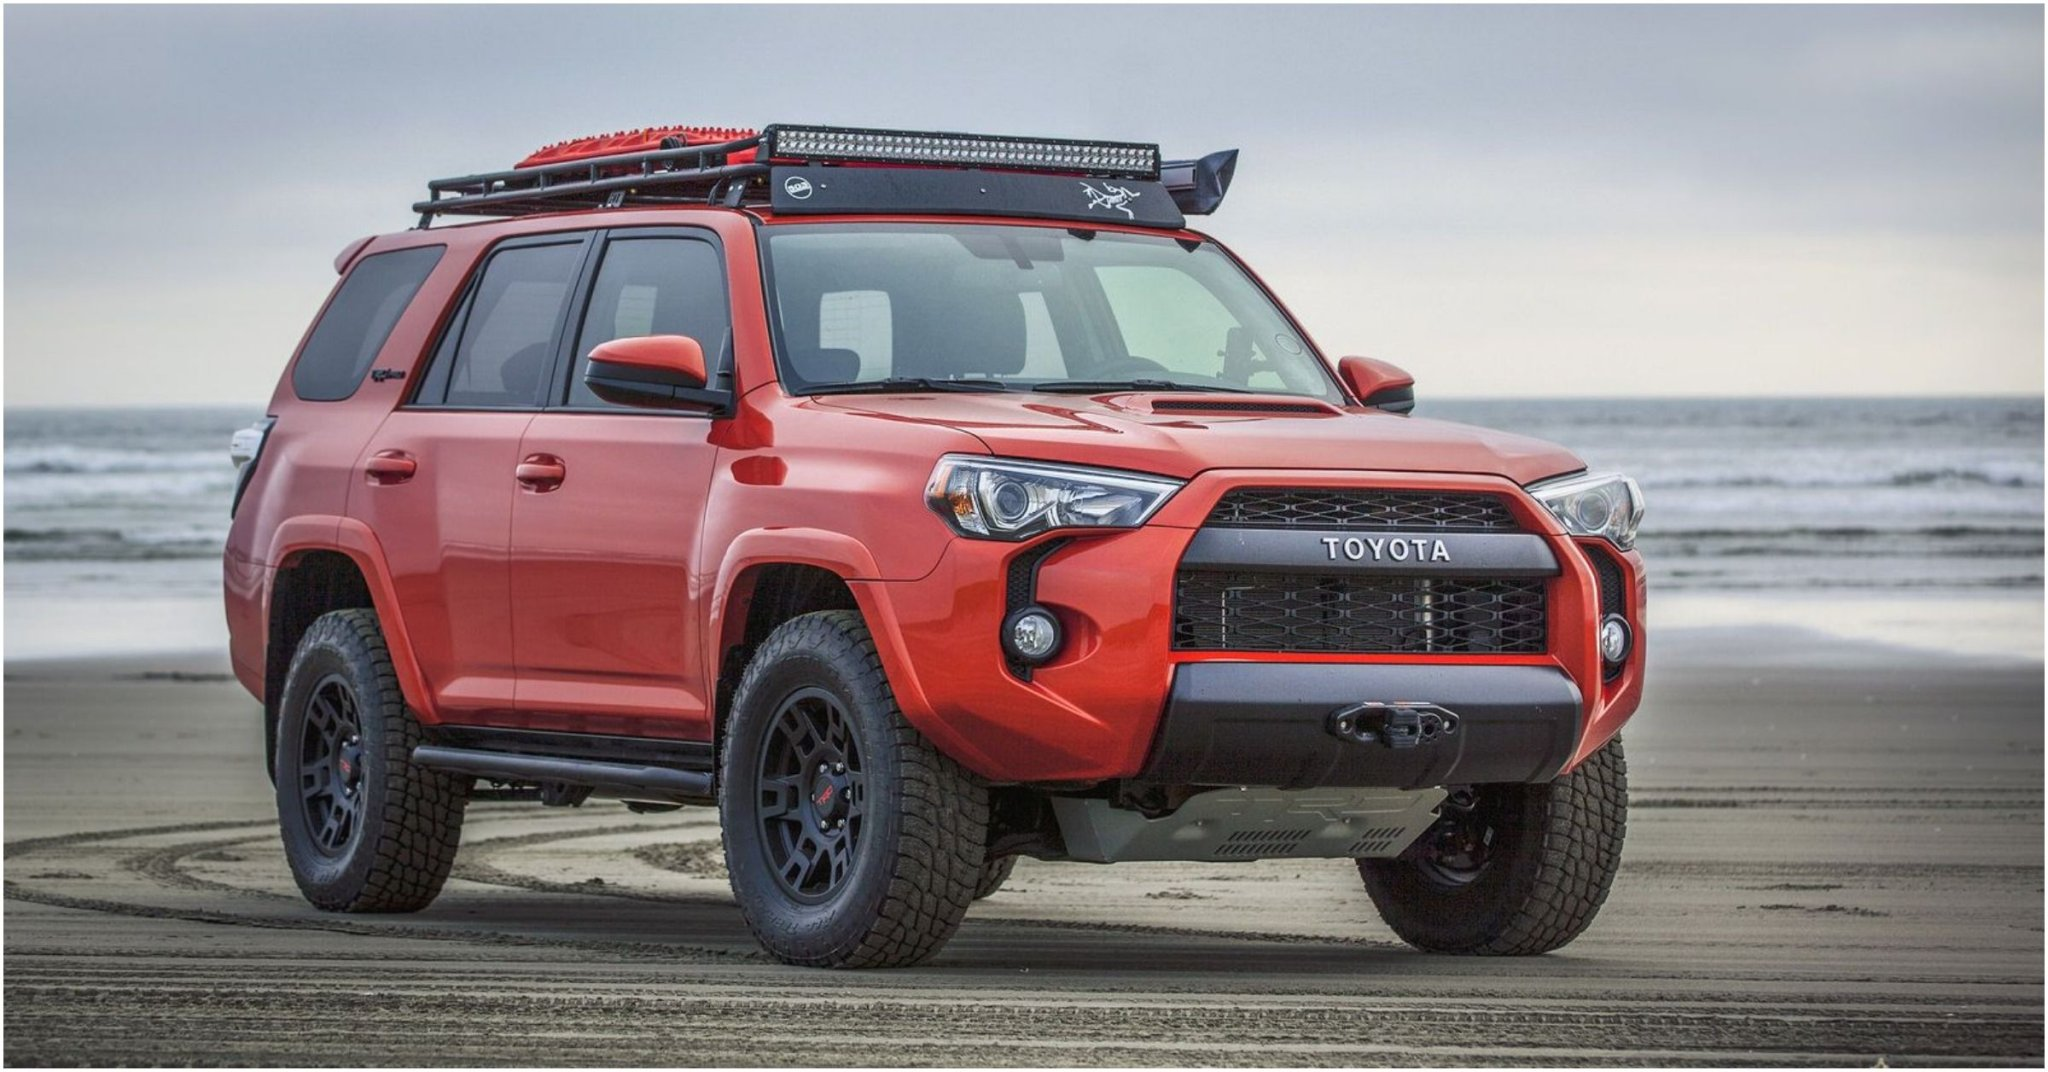 10 Toughest SUVs On The Streets (And 5 Trucks That Will Outlast Them)